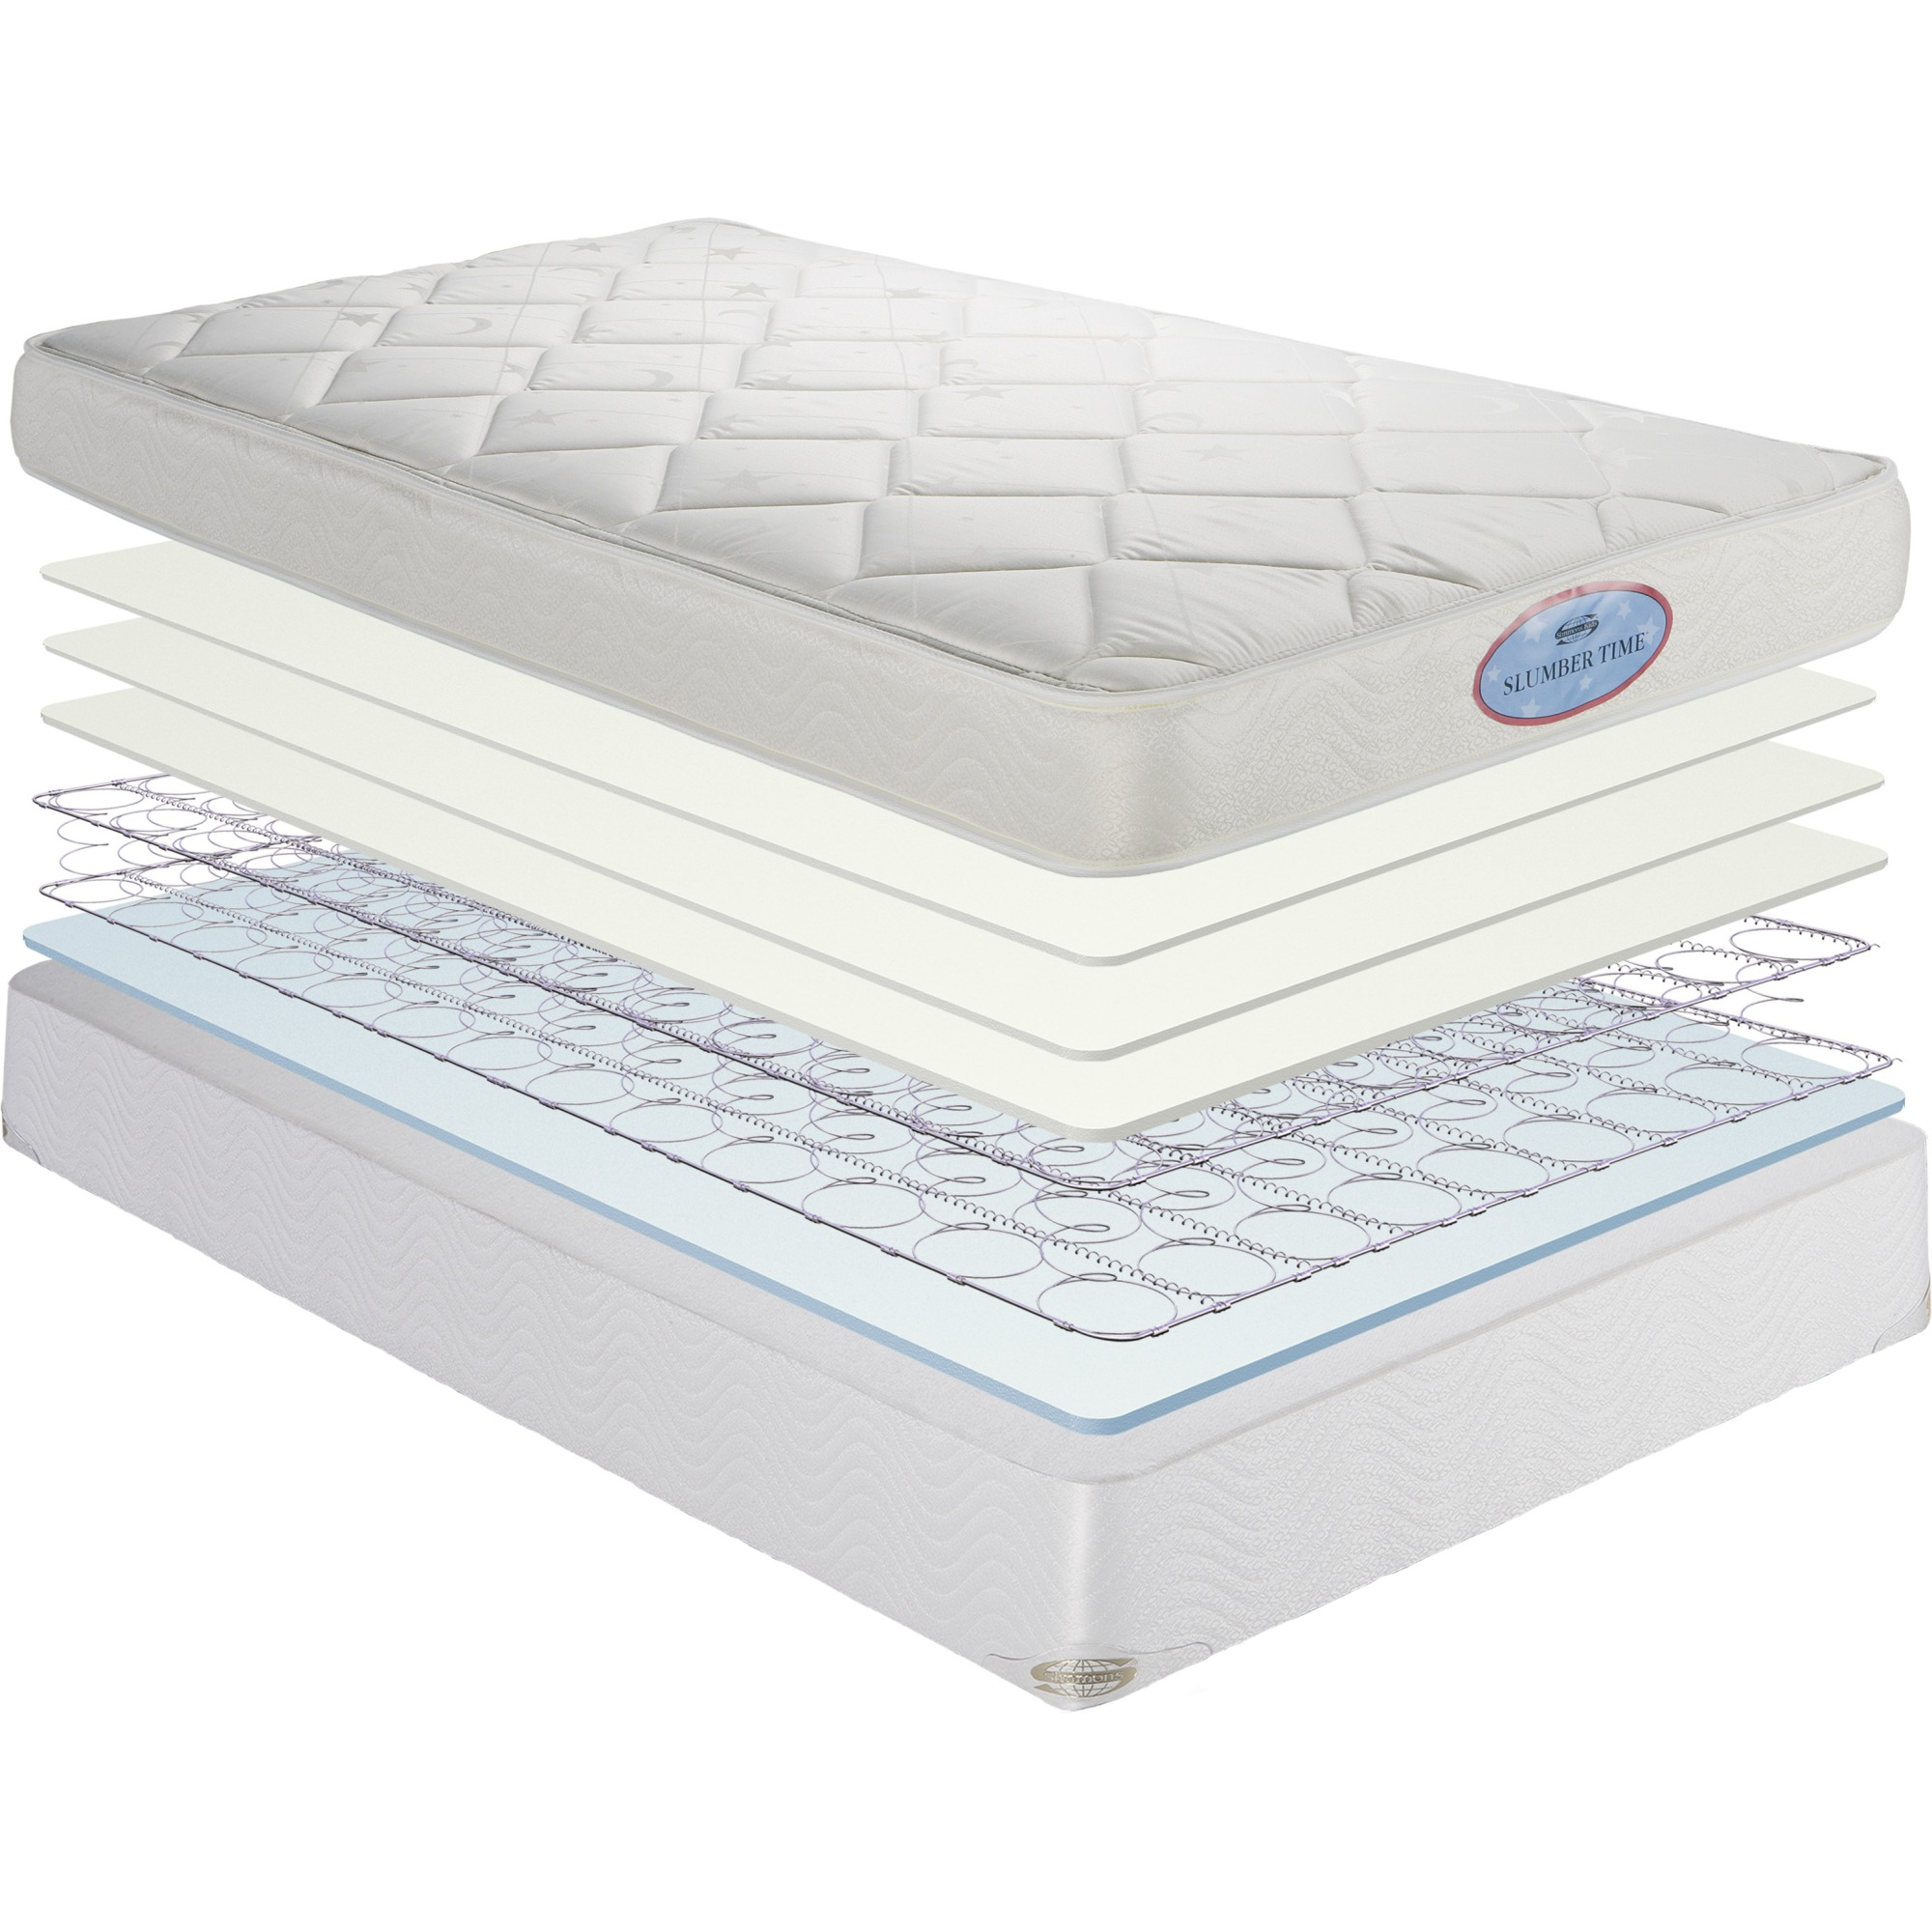 Slumber Time Firm Crib Toddler Mattress